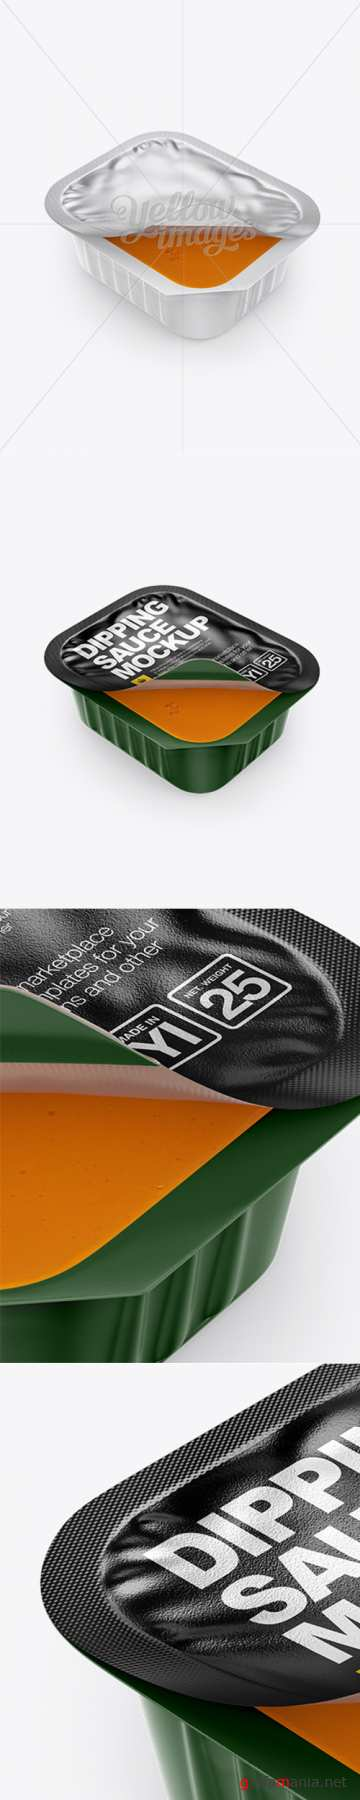 Spicy Buffalo Dipping Sauce Mockup (High-Angle Shot) 15085 TIF